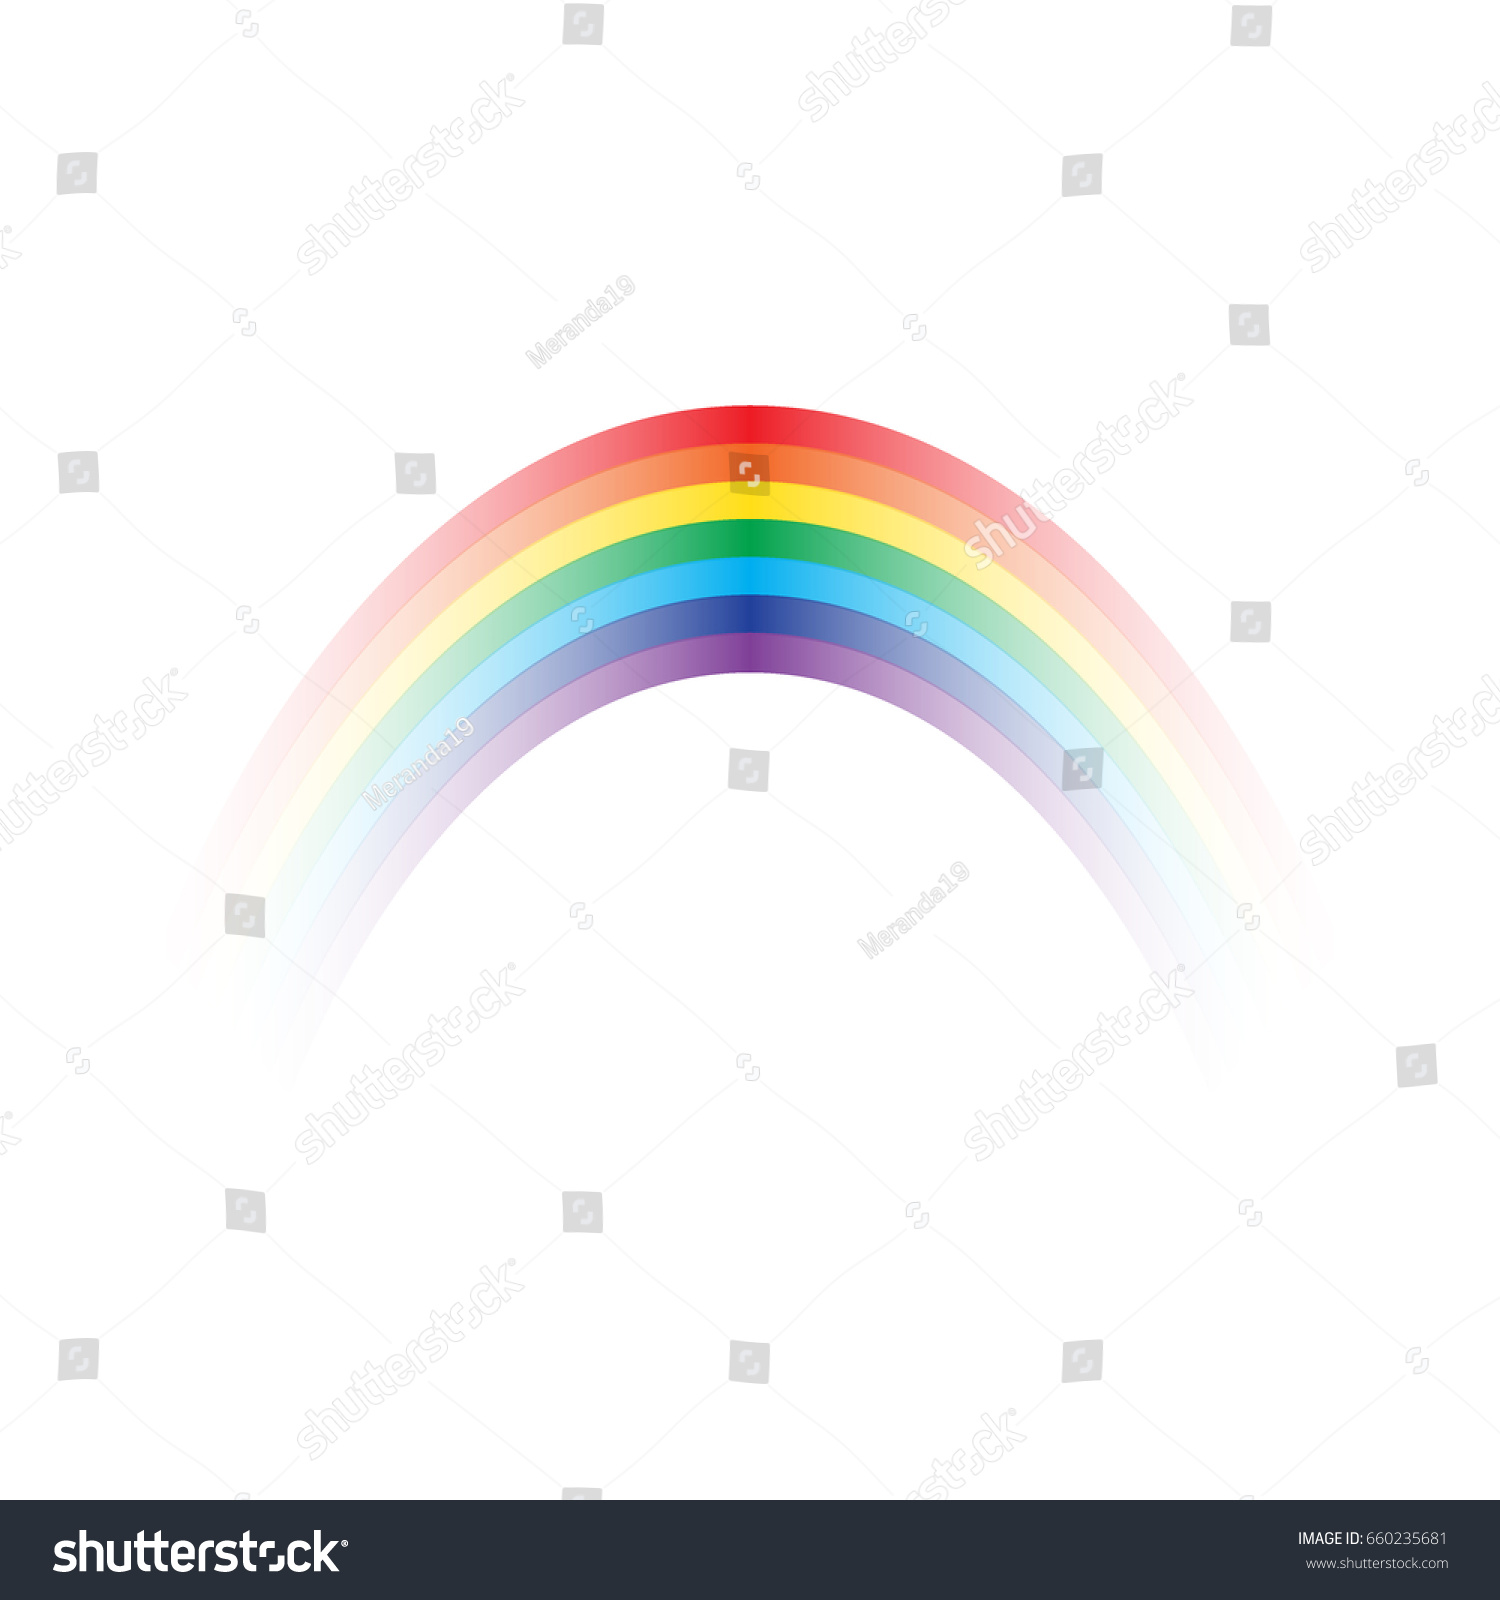 rainbow icon isolated on transparent background stock vector